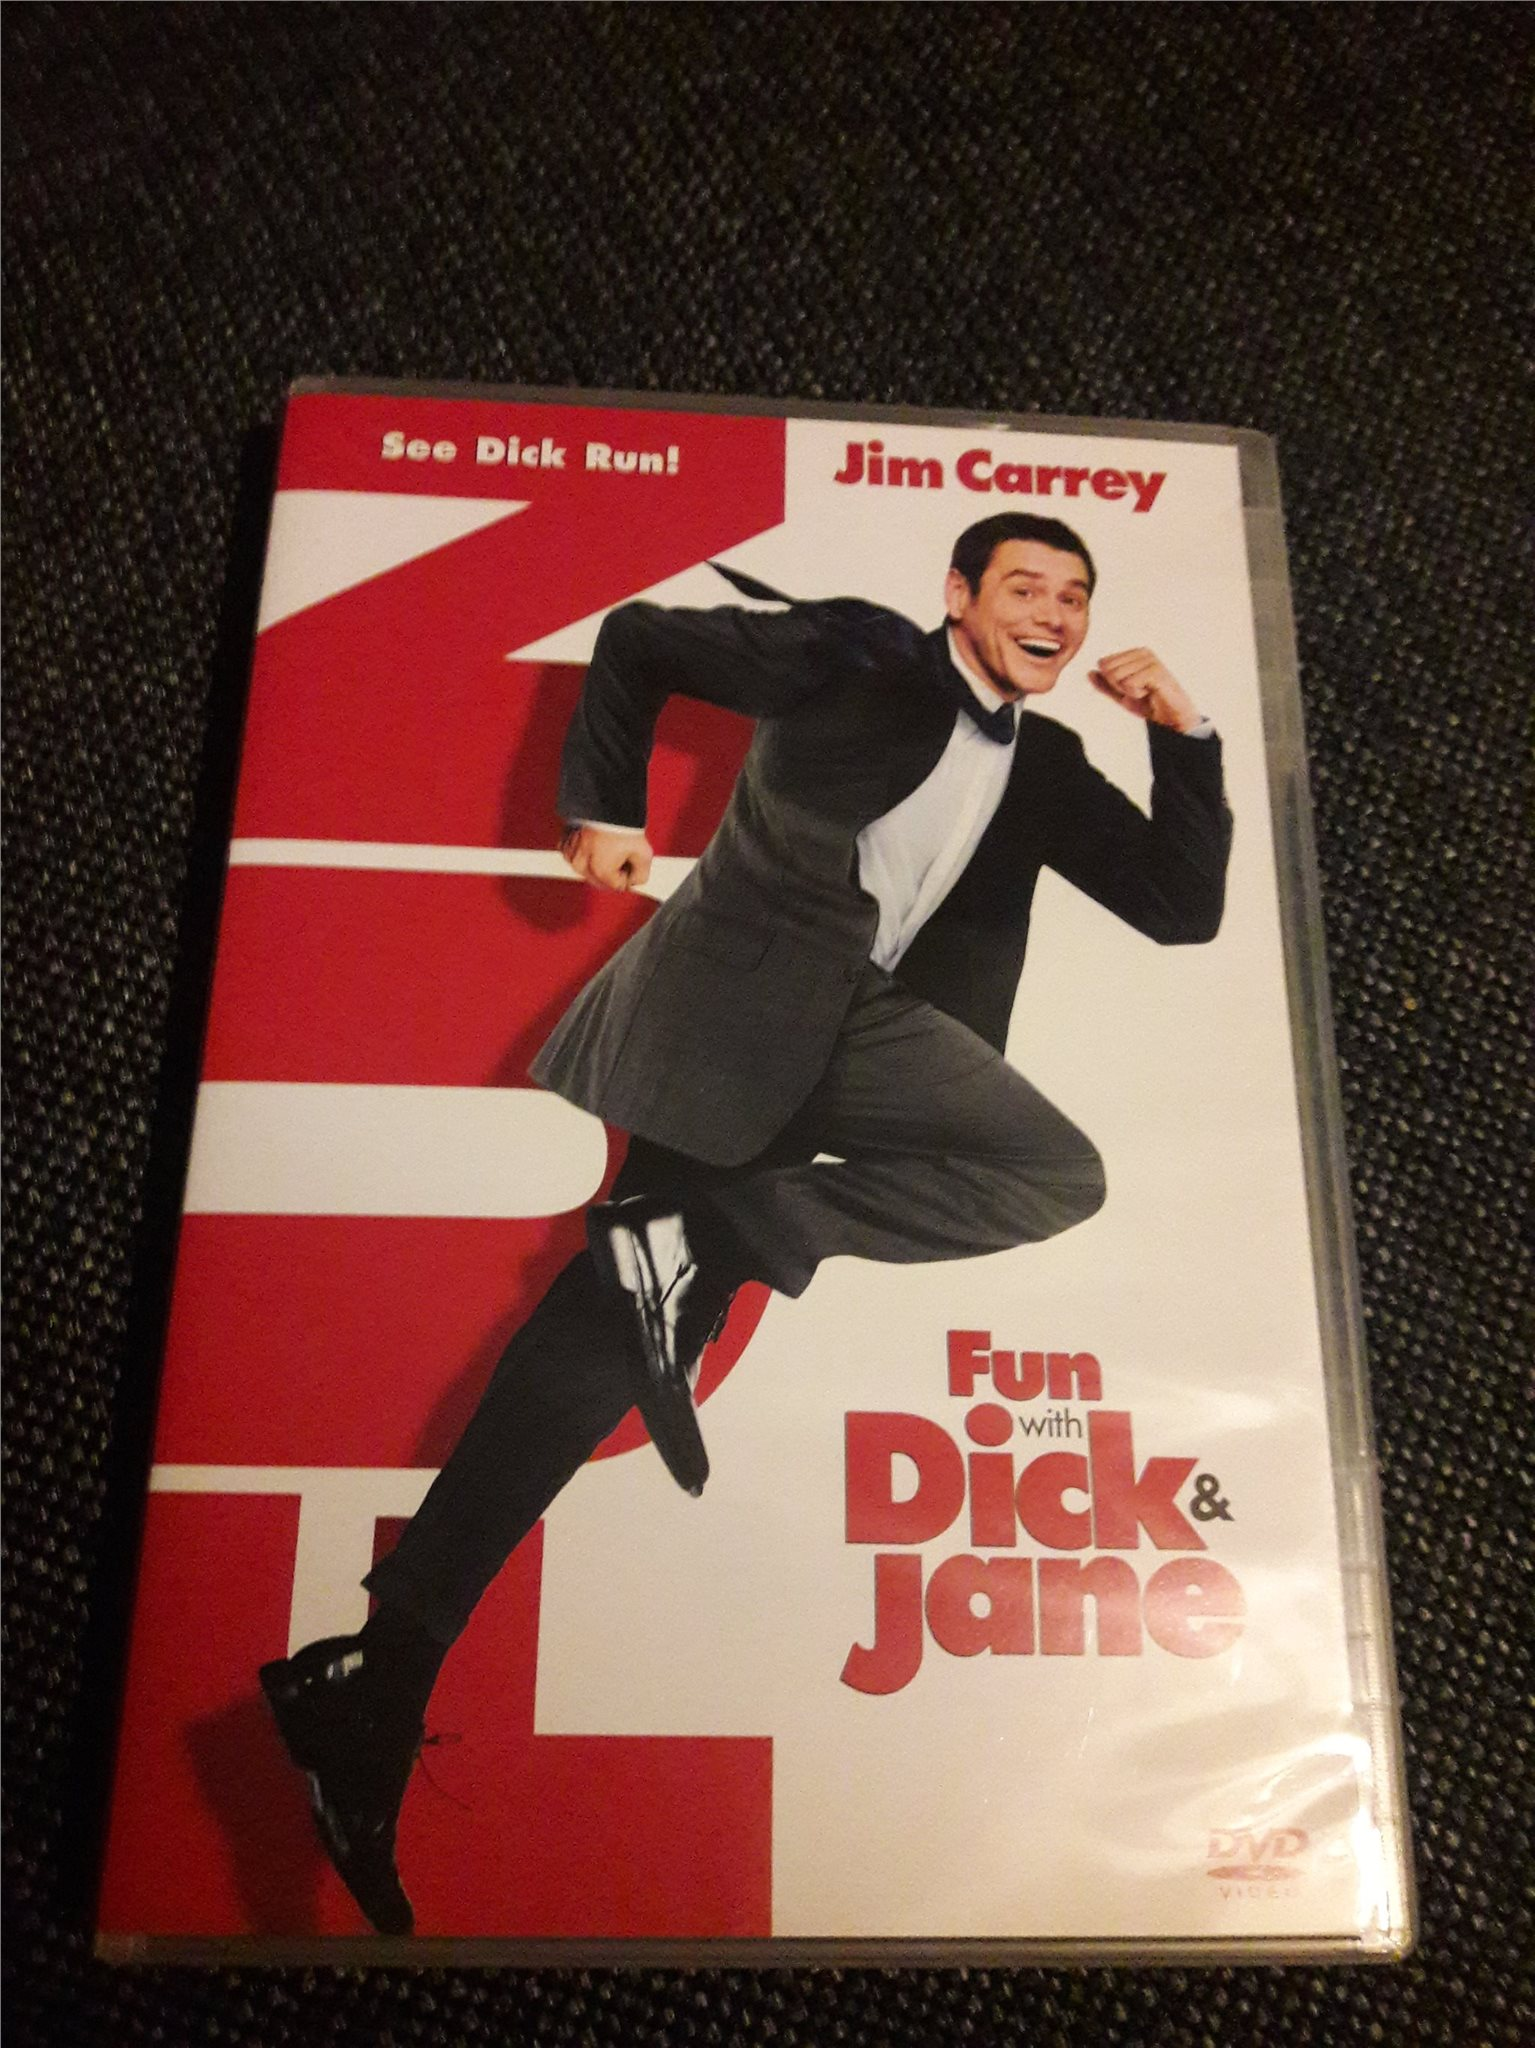 Dvd fun with Dick & Jane (Jim Carrey)